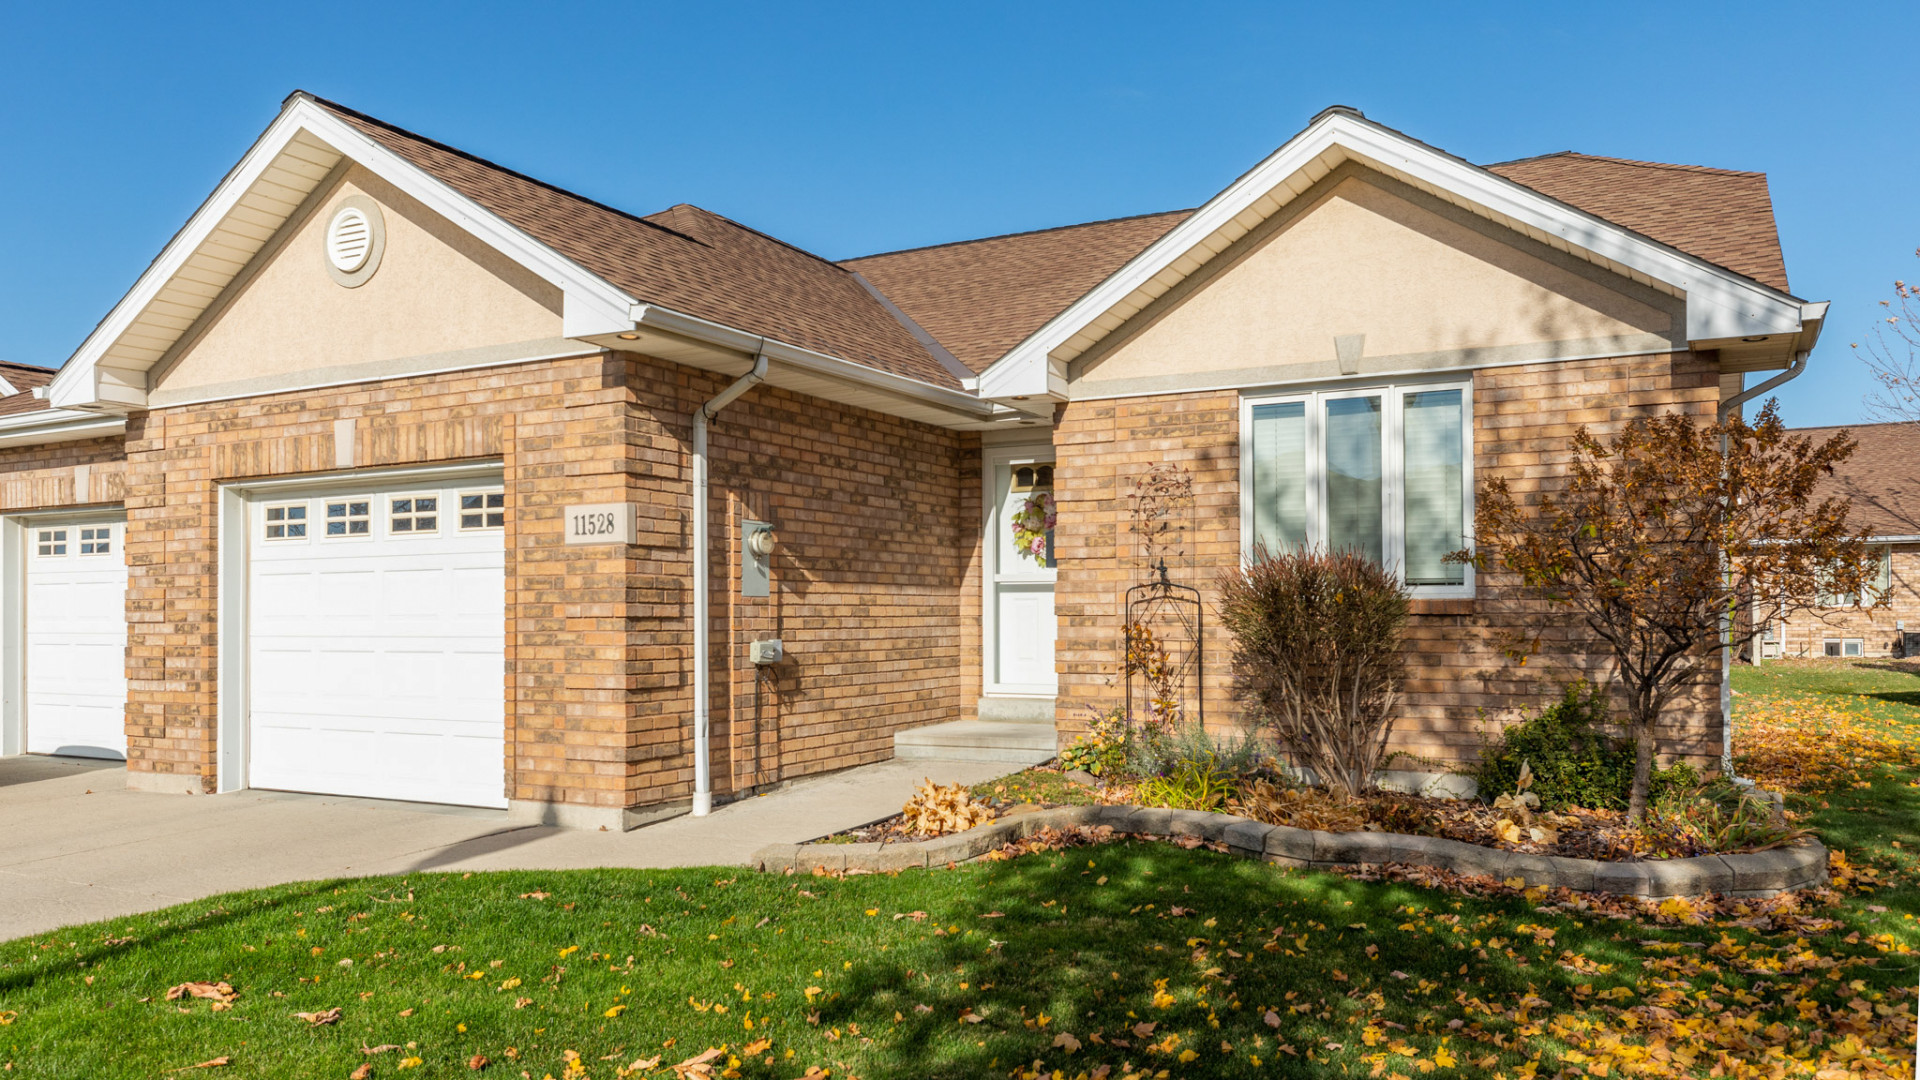 [SOLD] 11528 Firgrove Drive, Windsor – $299,900